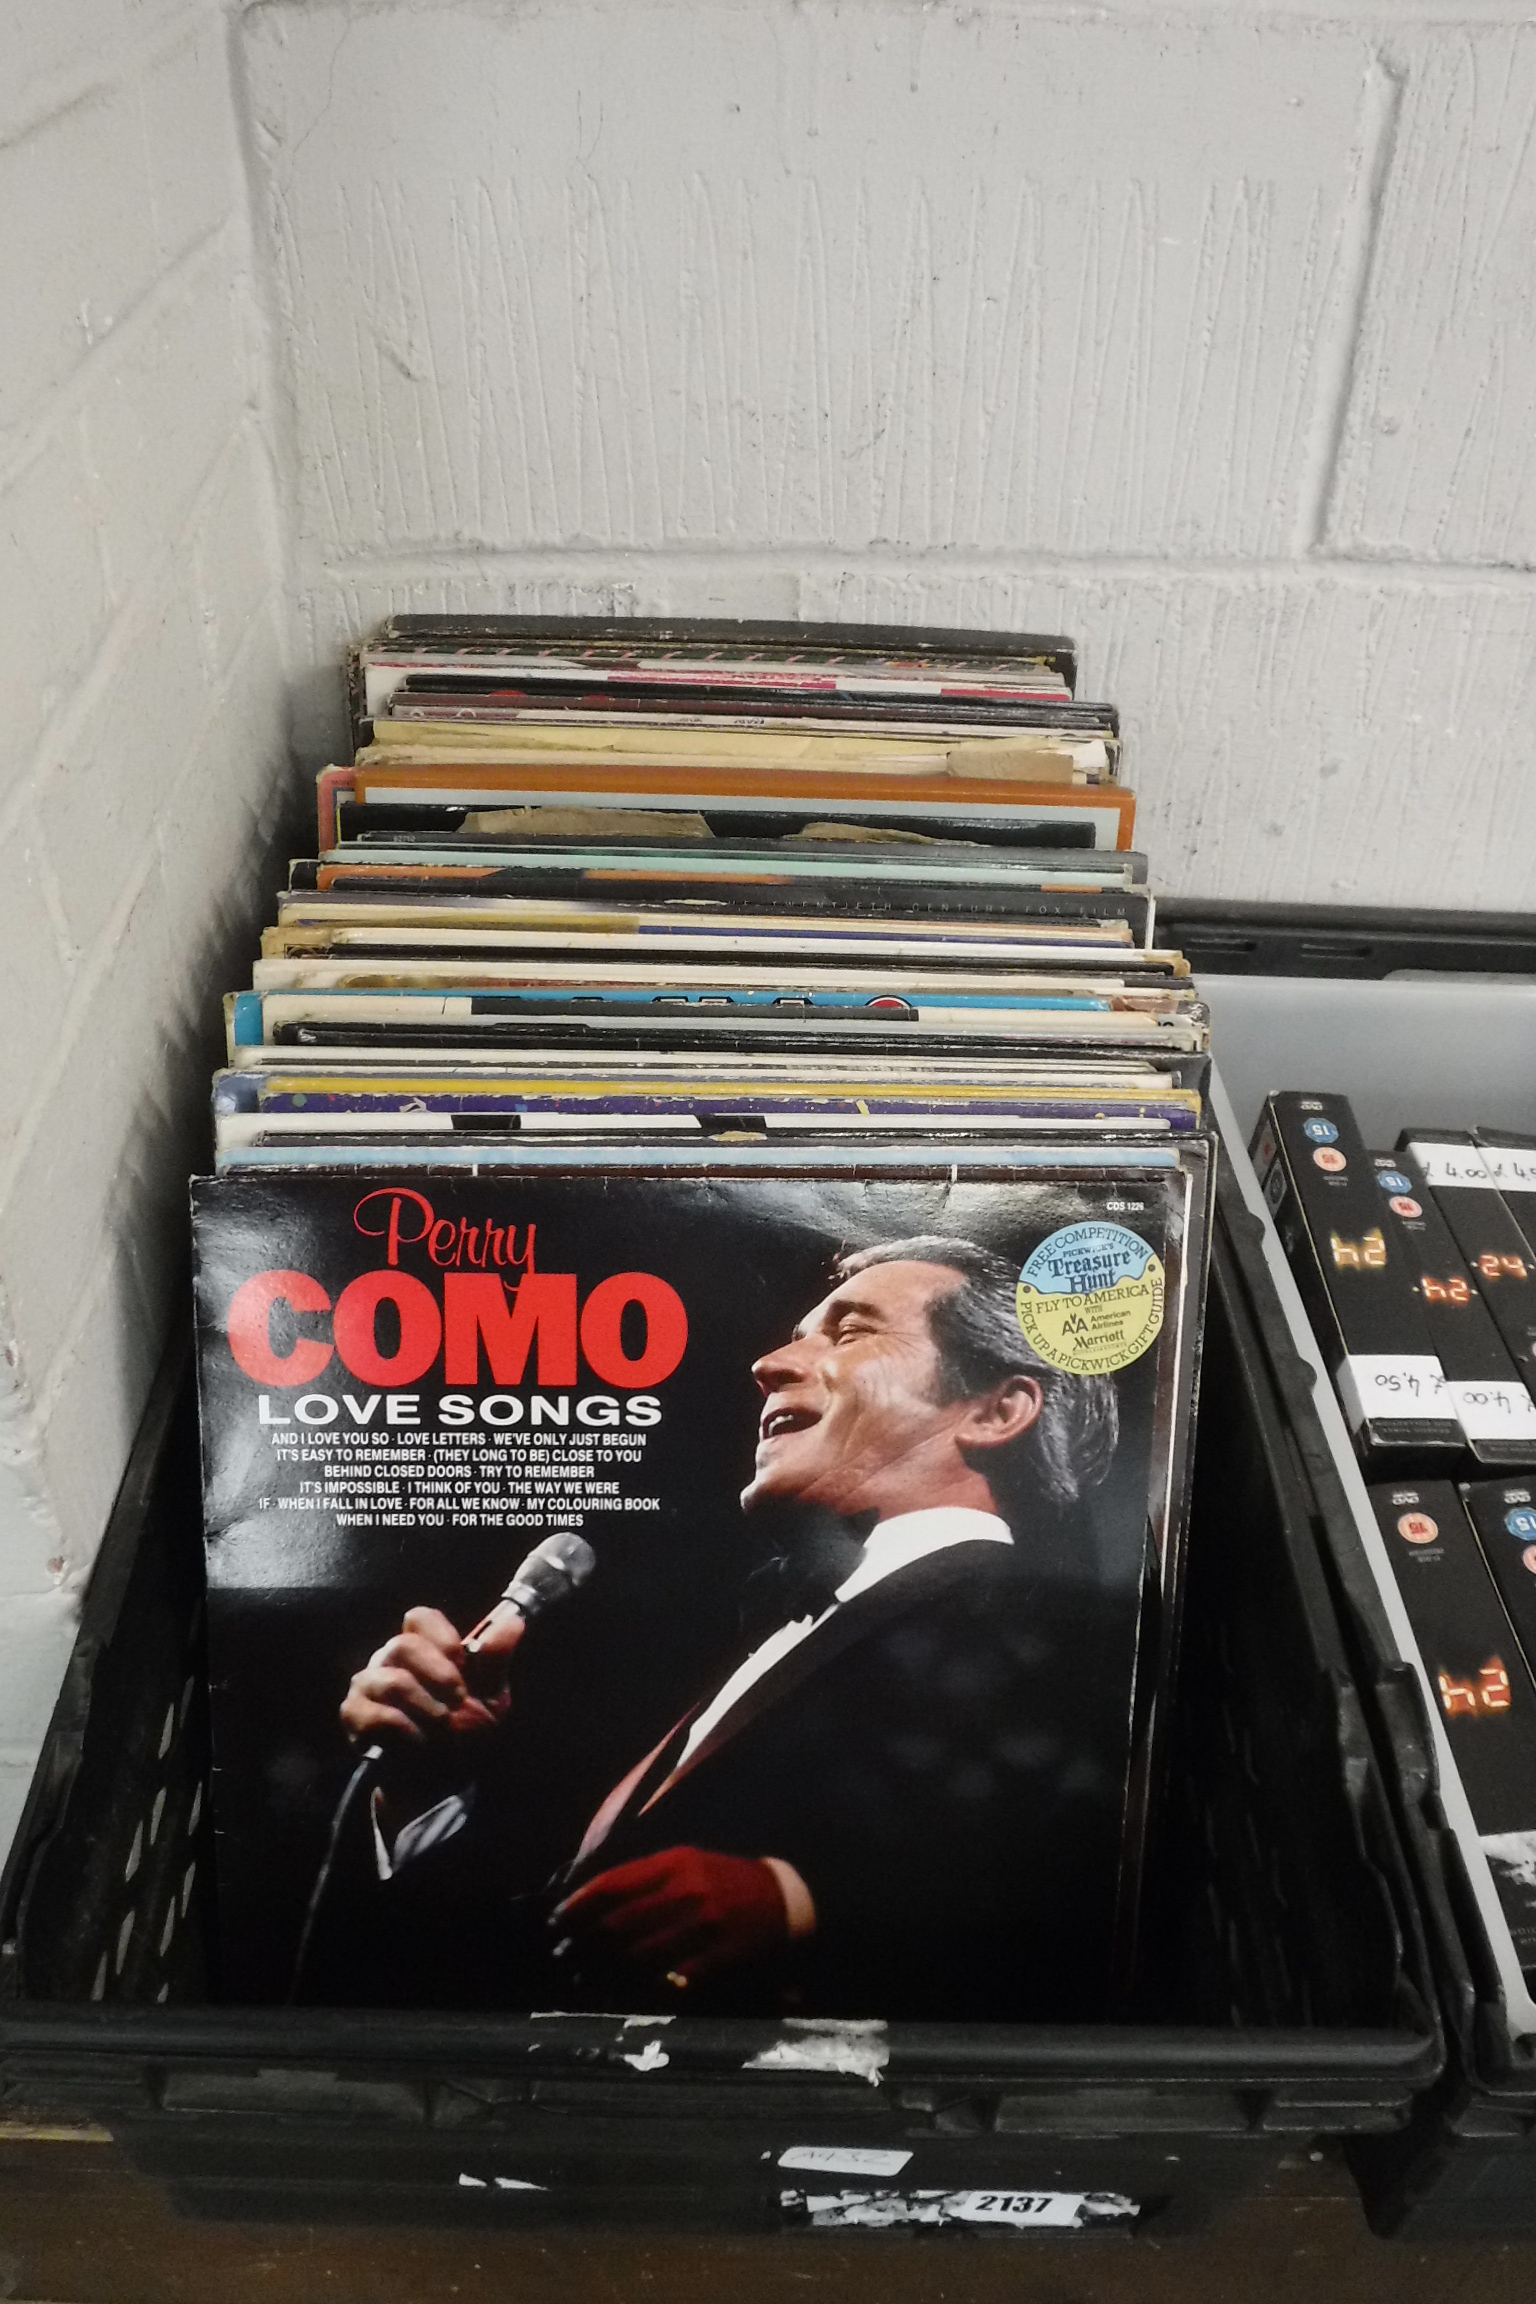 Crate of various records